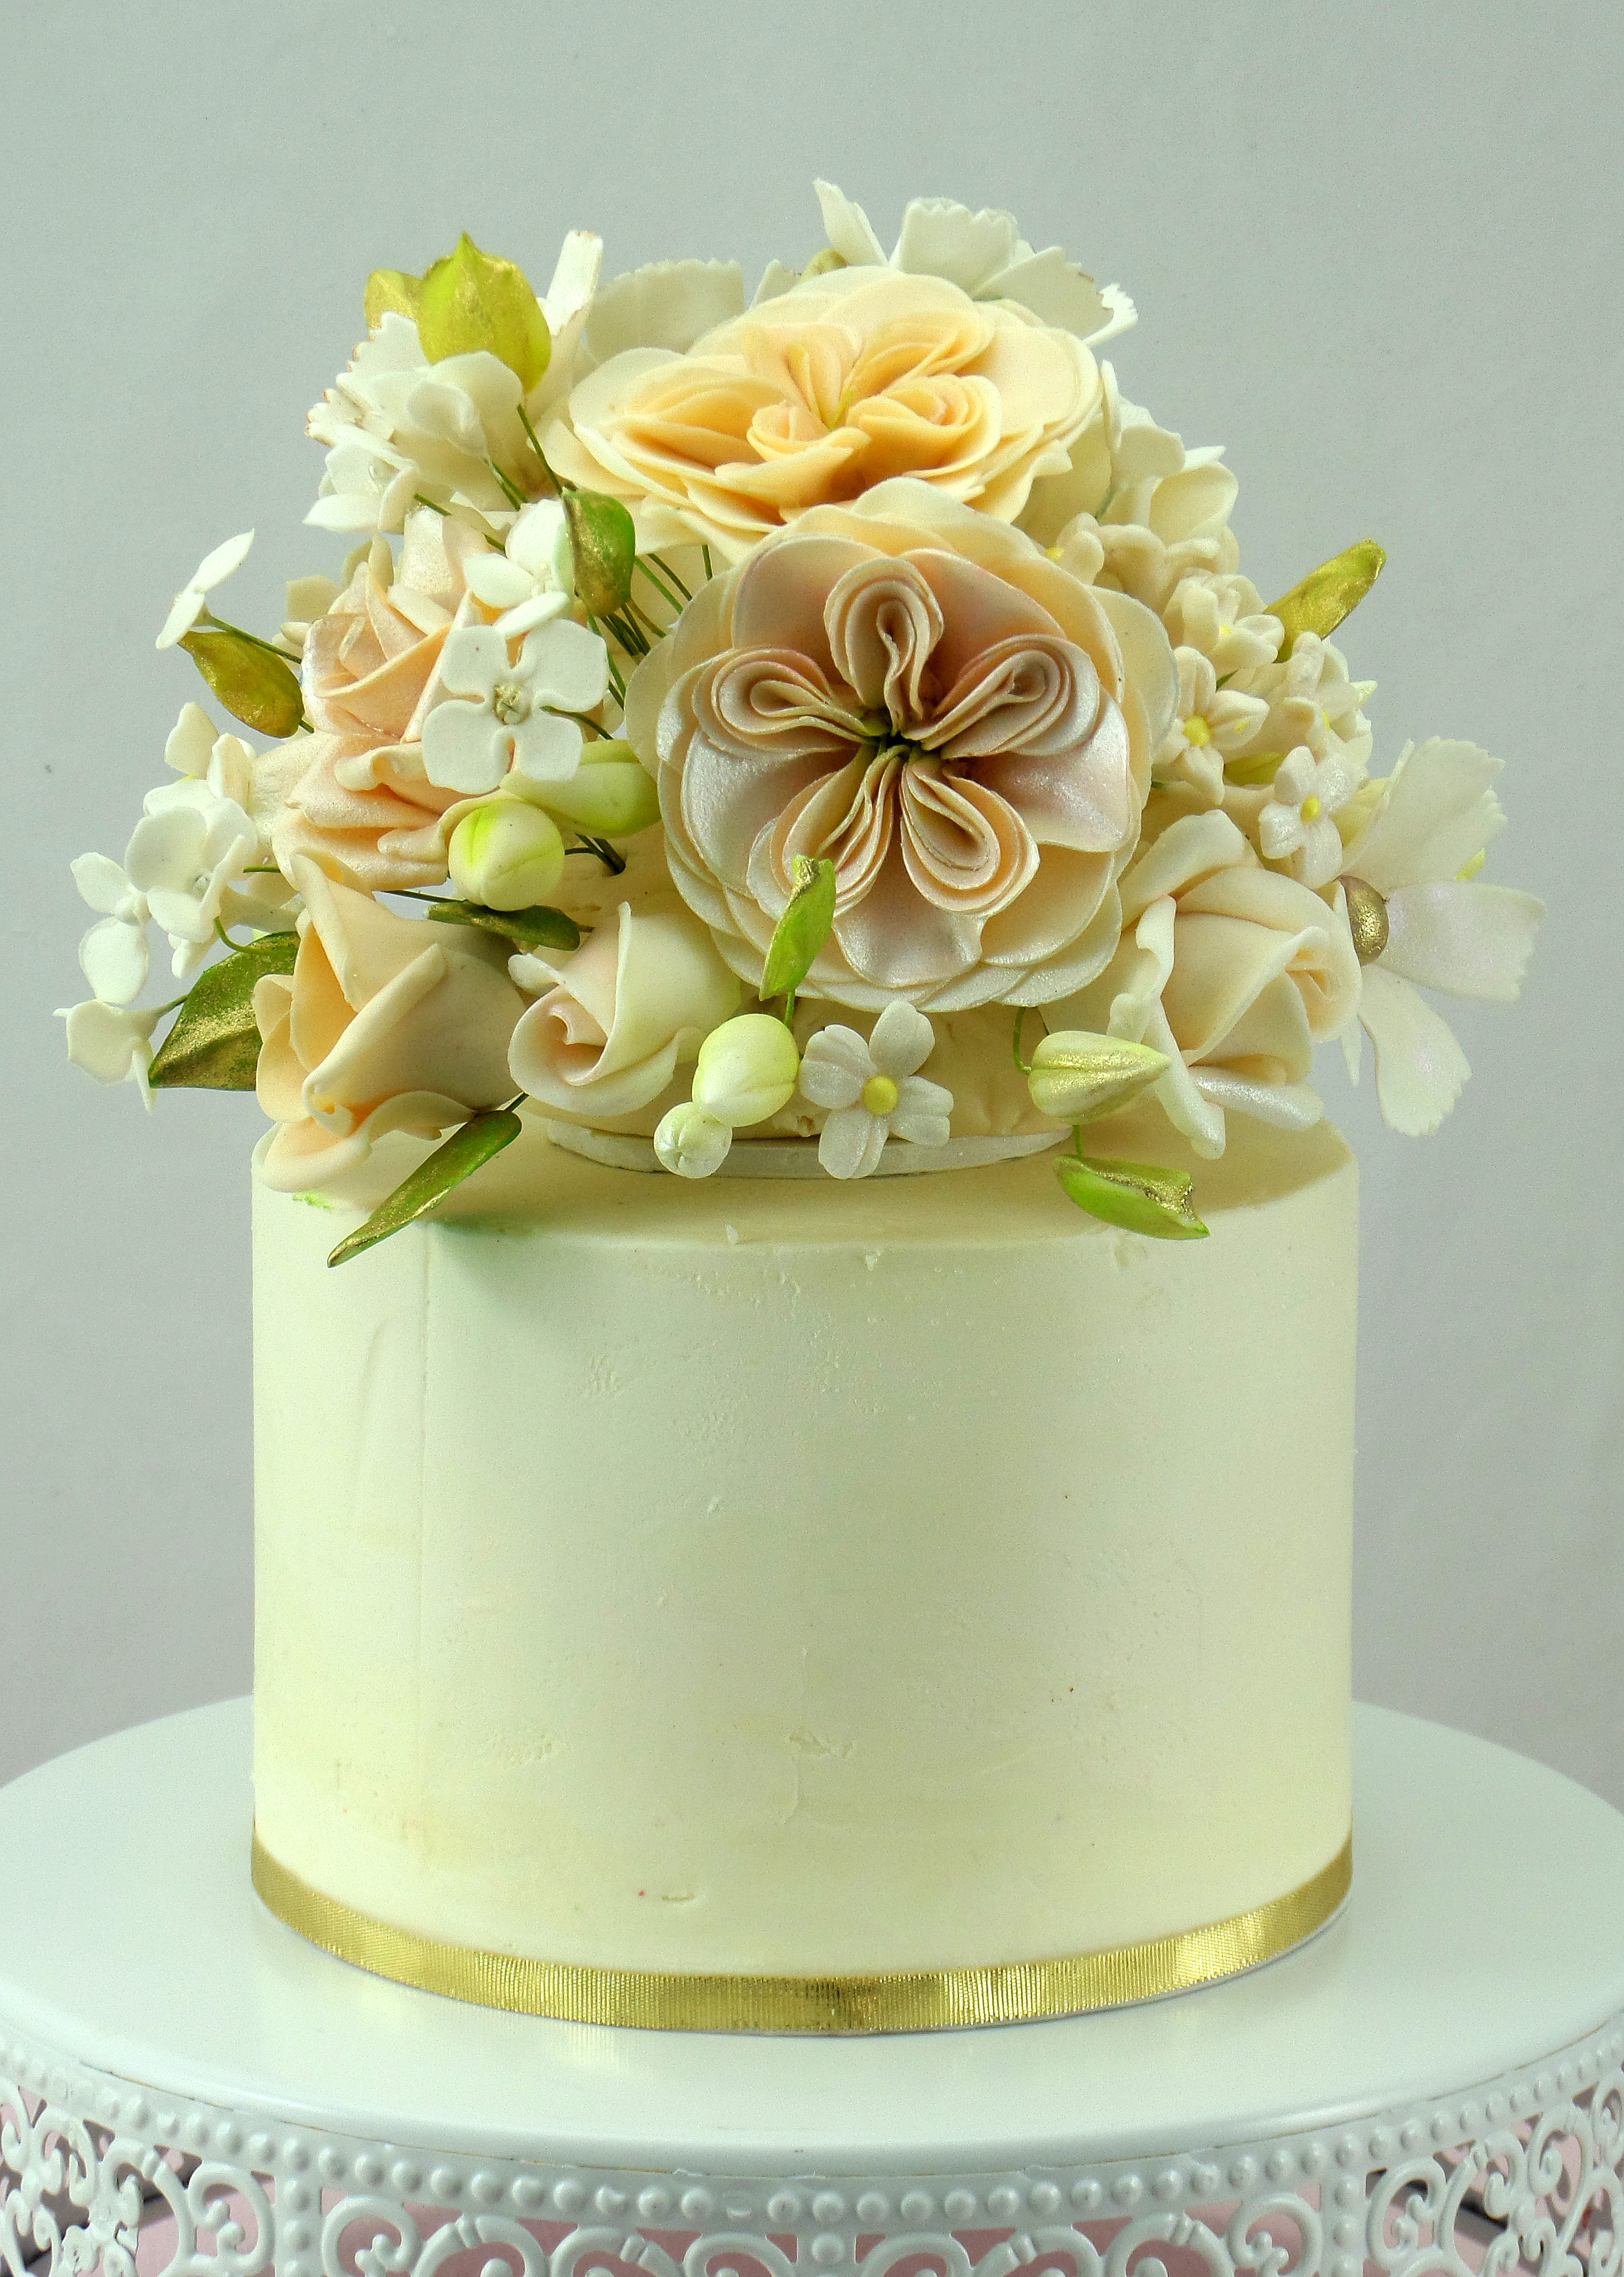 Autumn Roses Wedding Cake topper.jpg